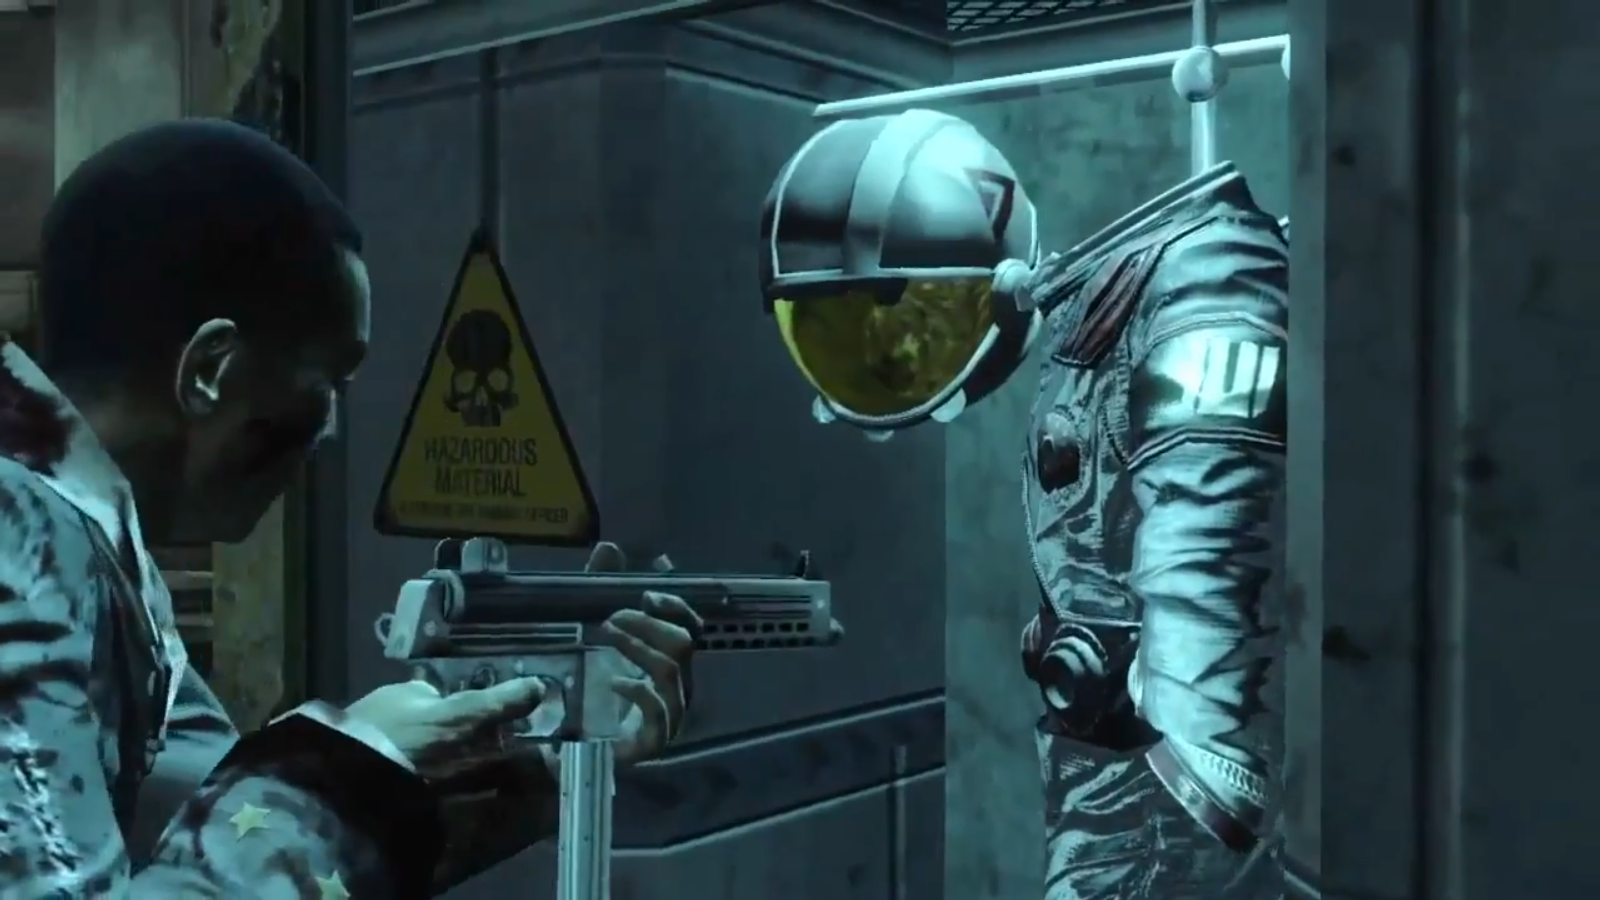 cod ghosts space suit - photo #6